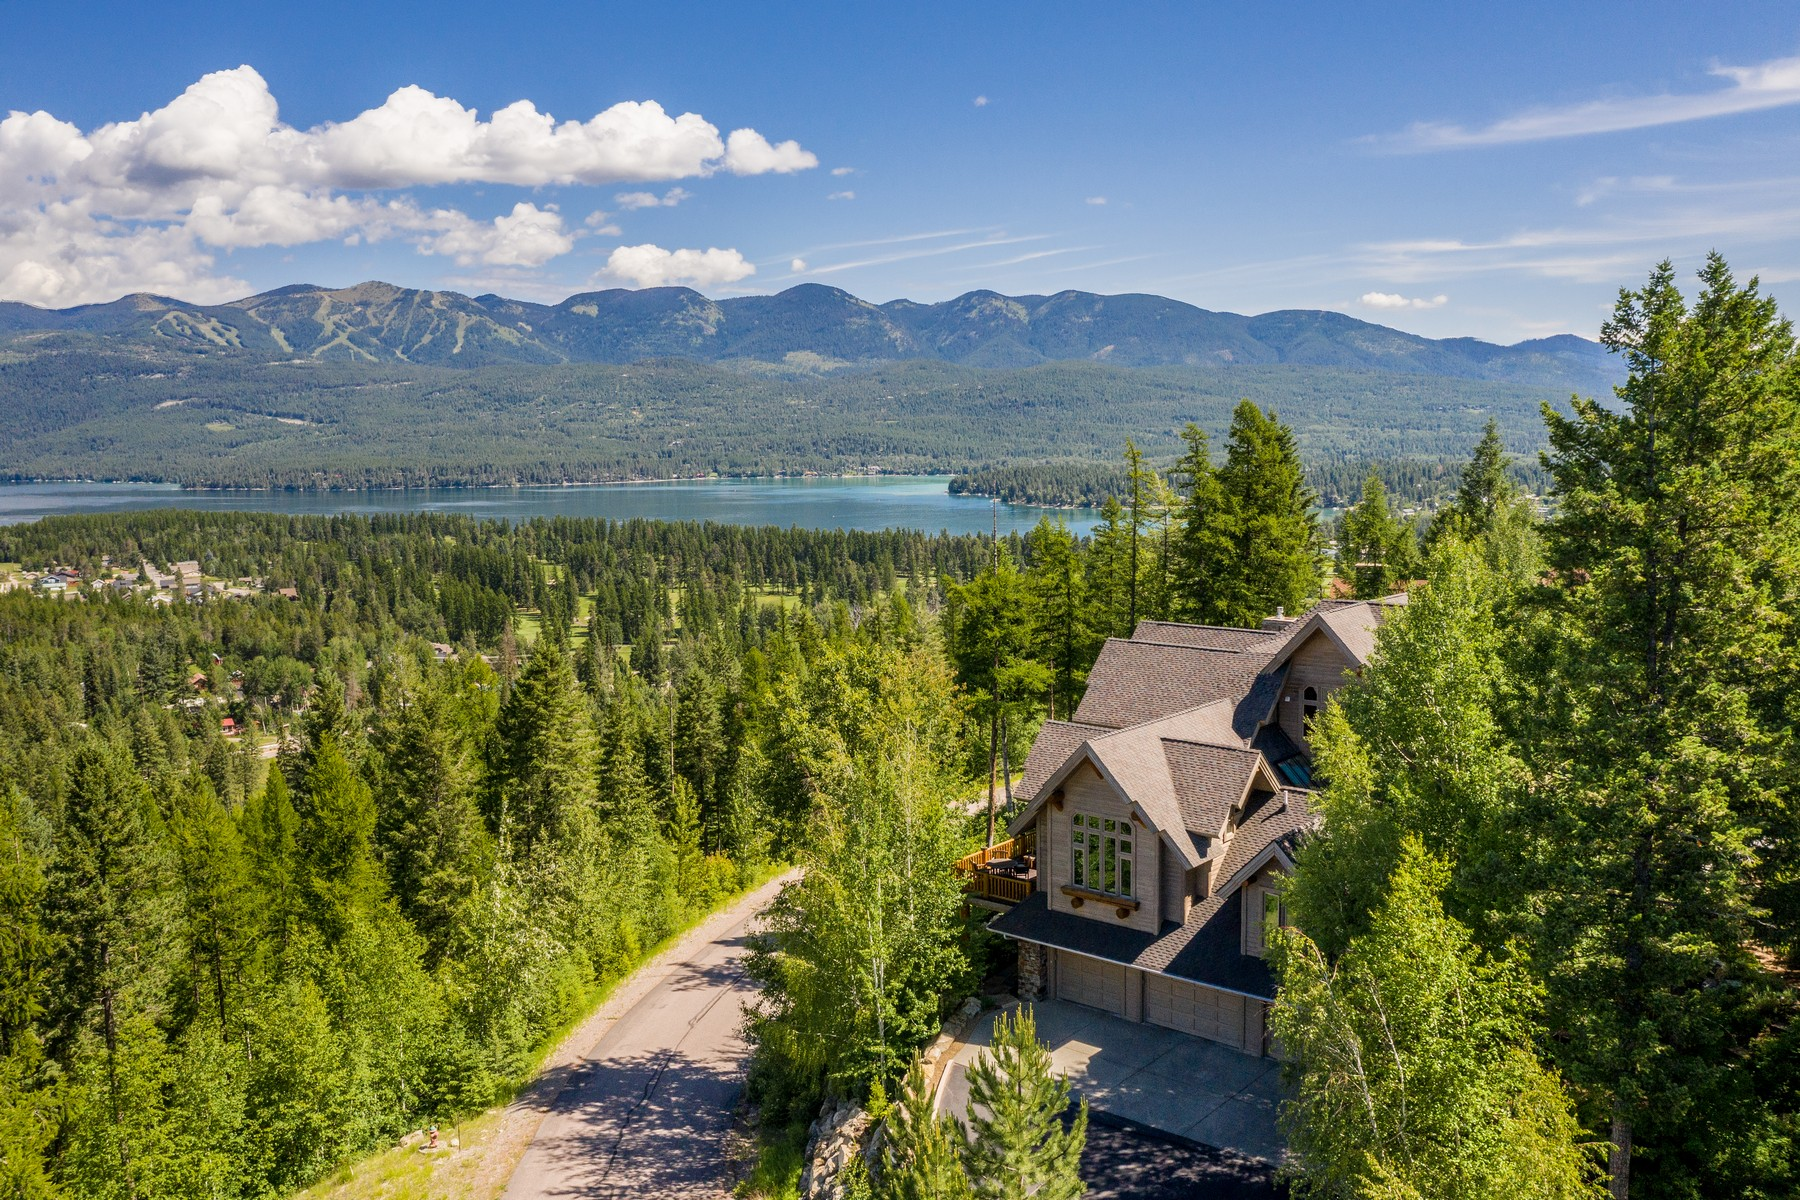 Single Family Homes for Sale at 701 Grouse Ridge Court Whitefish, Montana 59937 United States